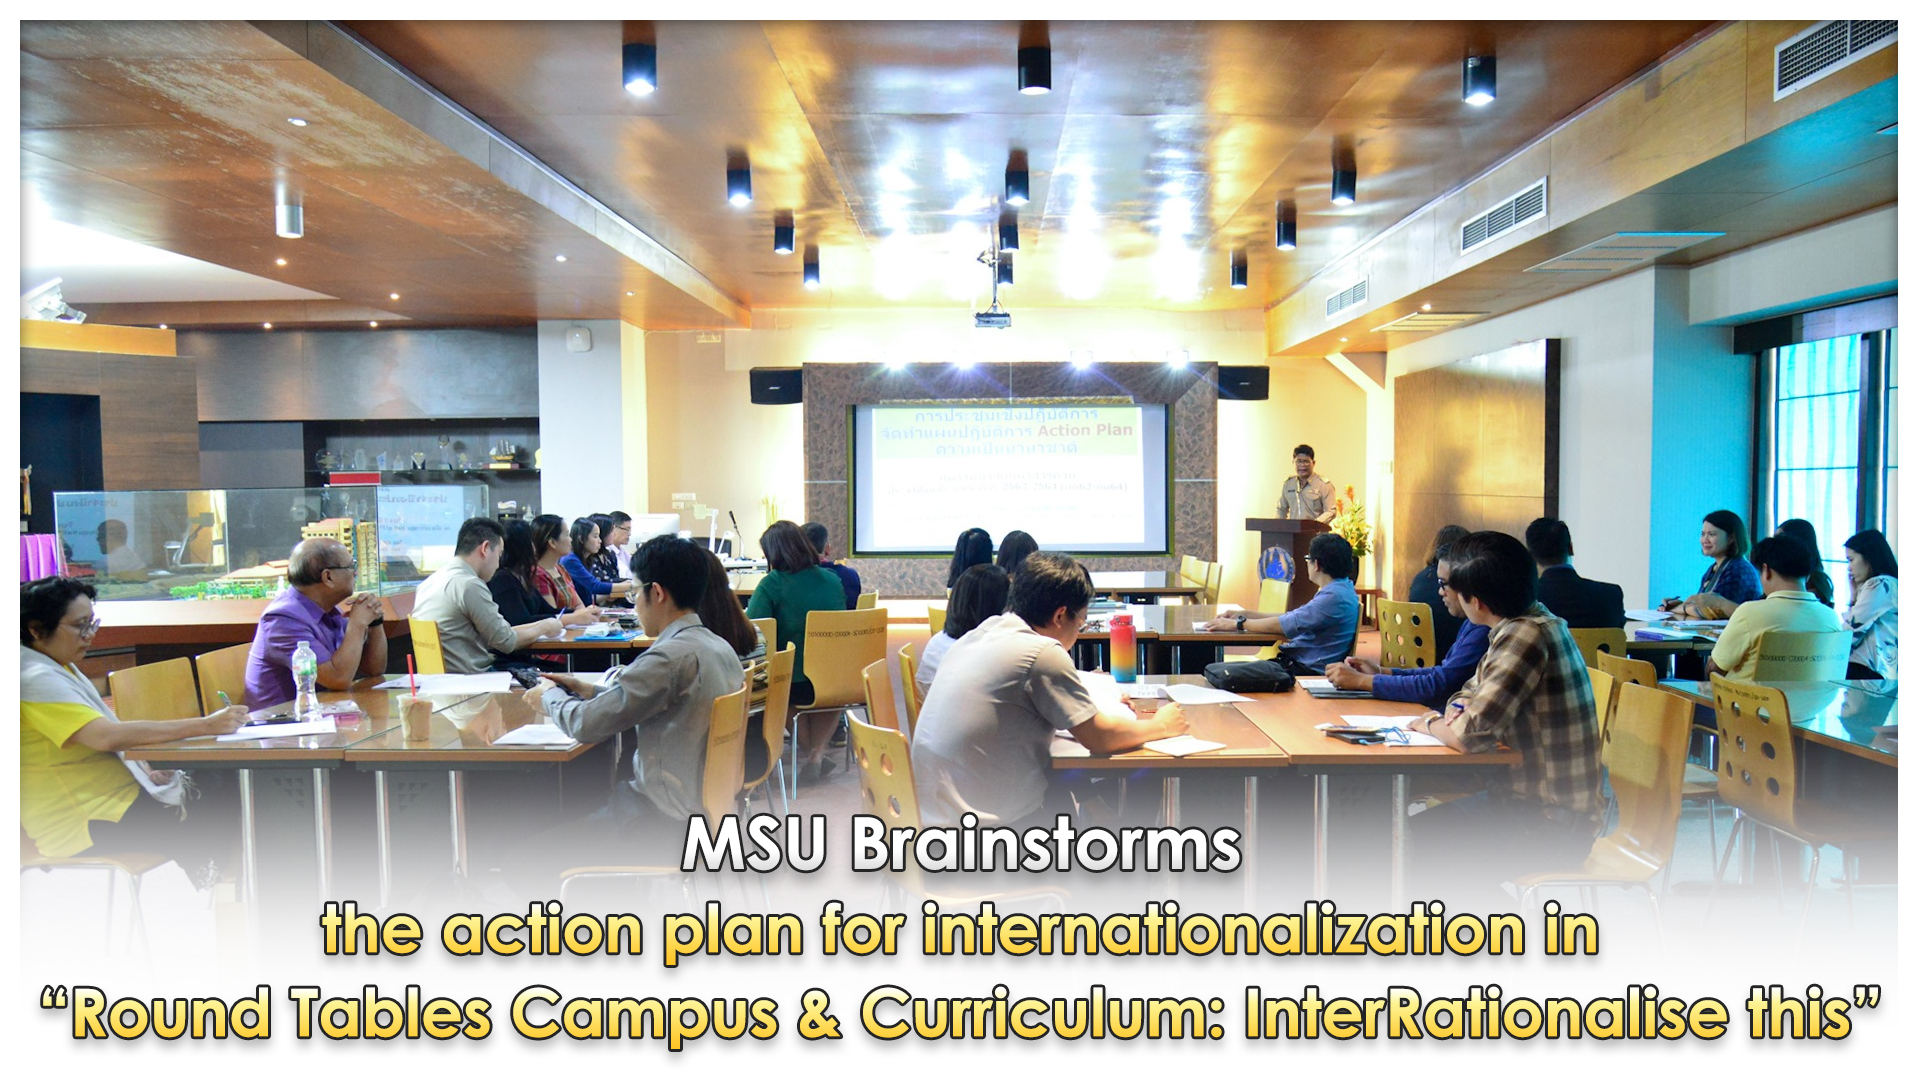 "MSU Brainstorms the action plan for internationalization in ""Round Tables Campus & Curriculum: InterRationalise this"""